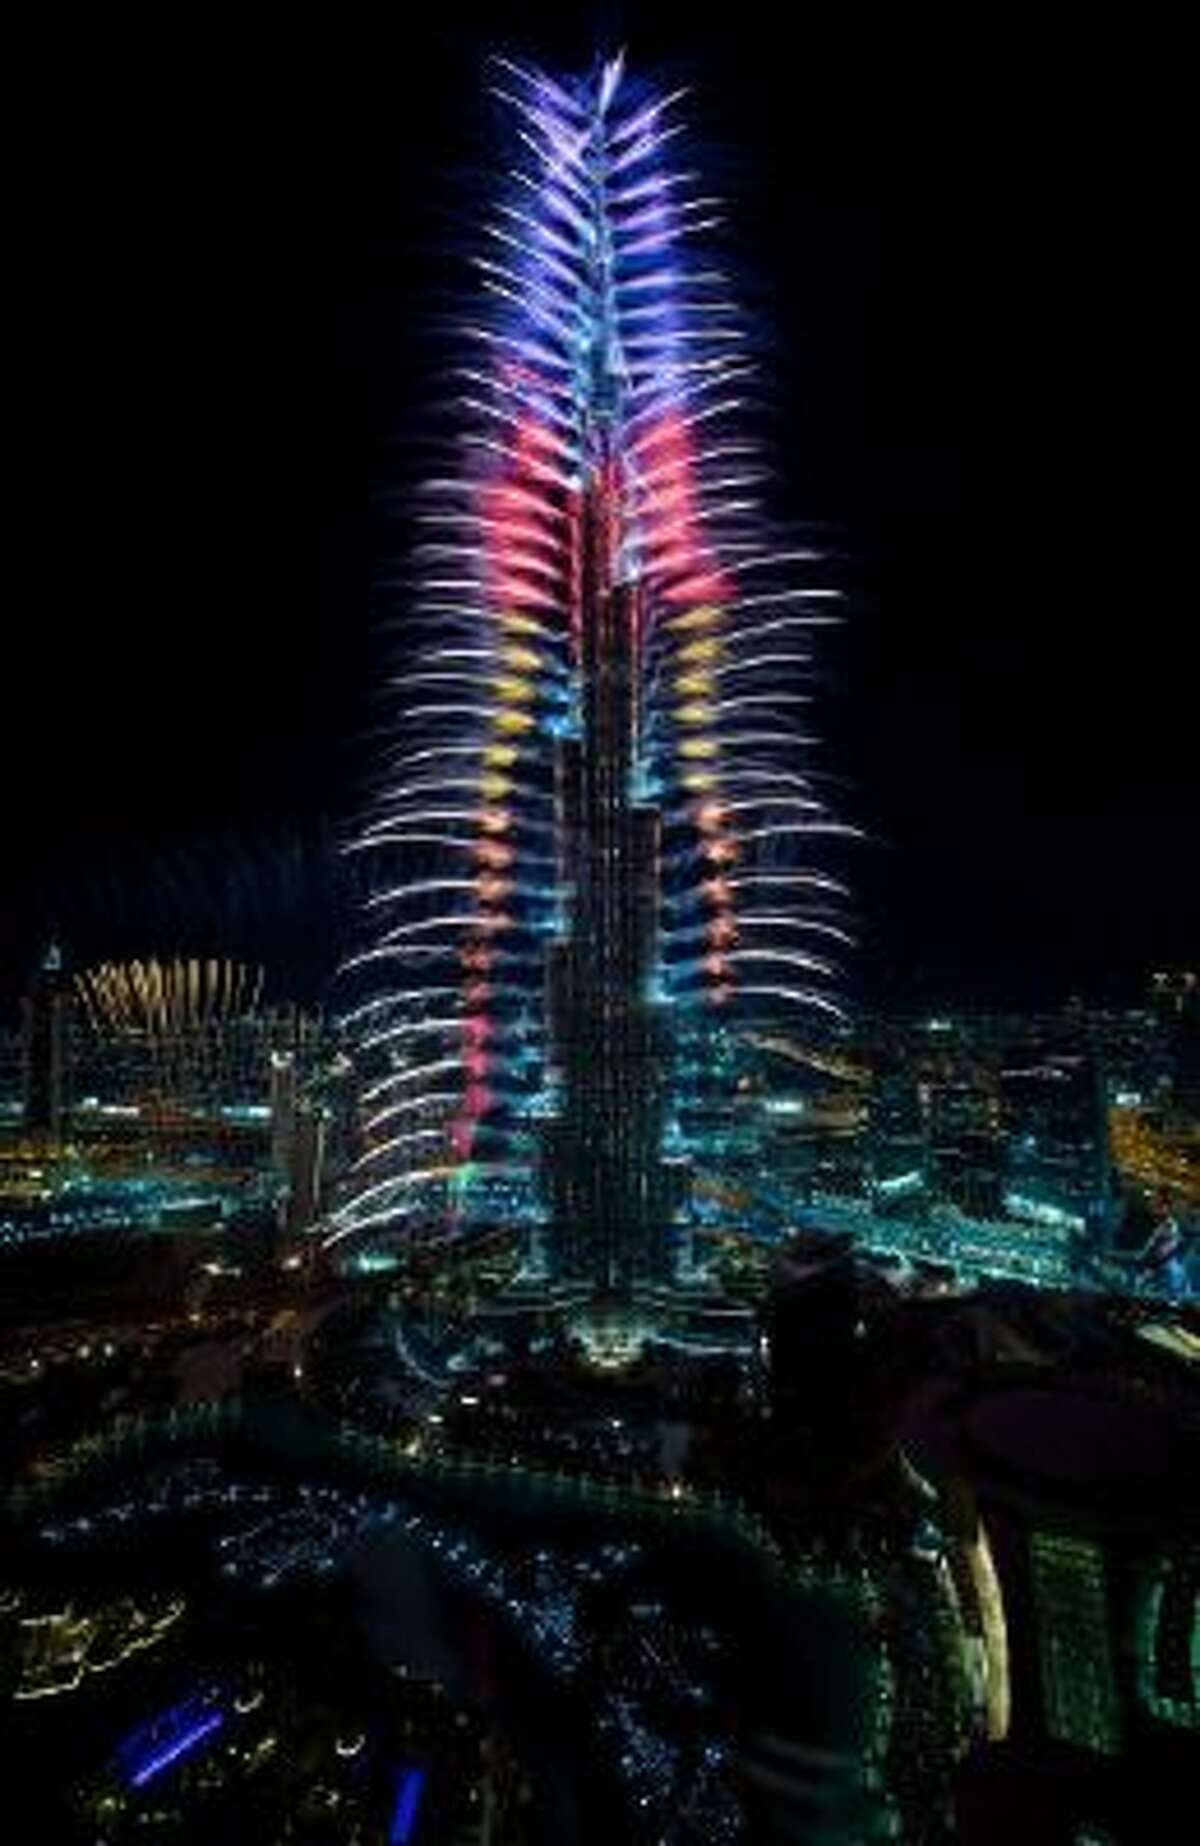 Dubai hopes to set a fireworks record with its New Year's show.